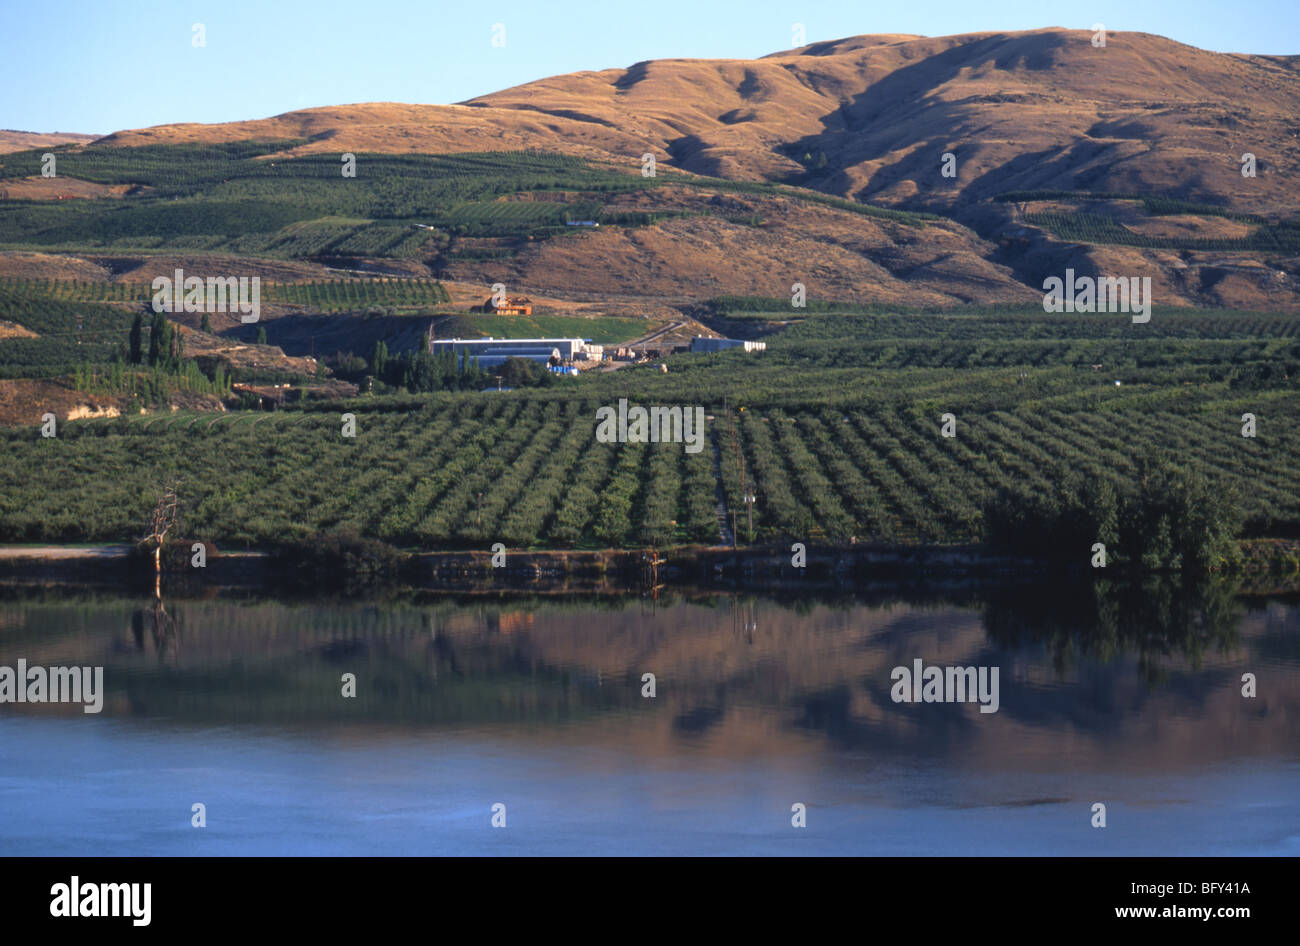 An apple orchard along the Okanogan River near Omak in Washington State. Stock Photo